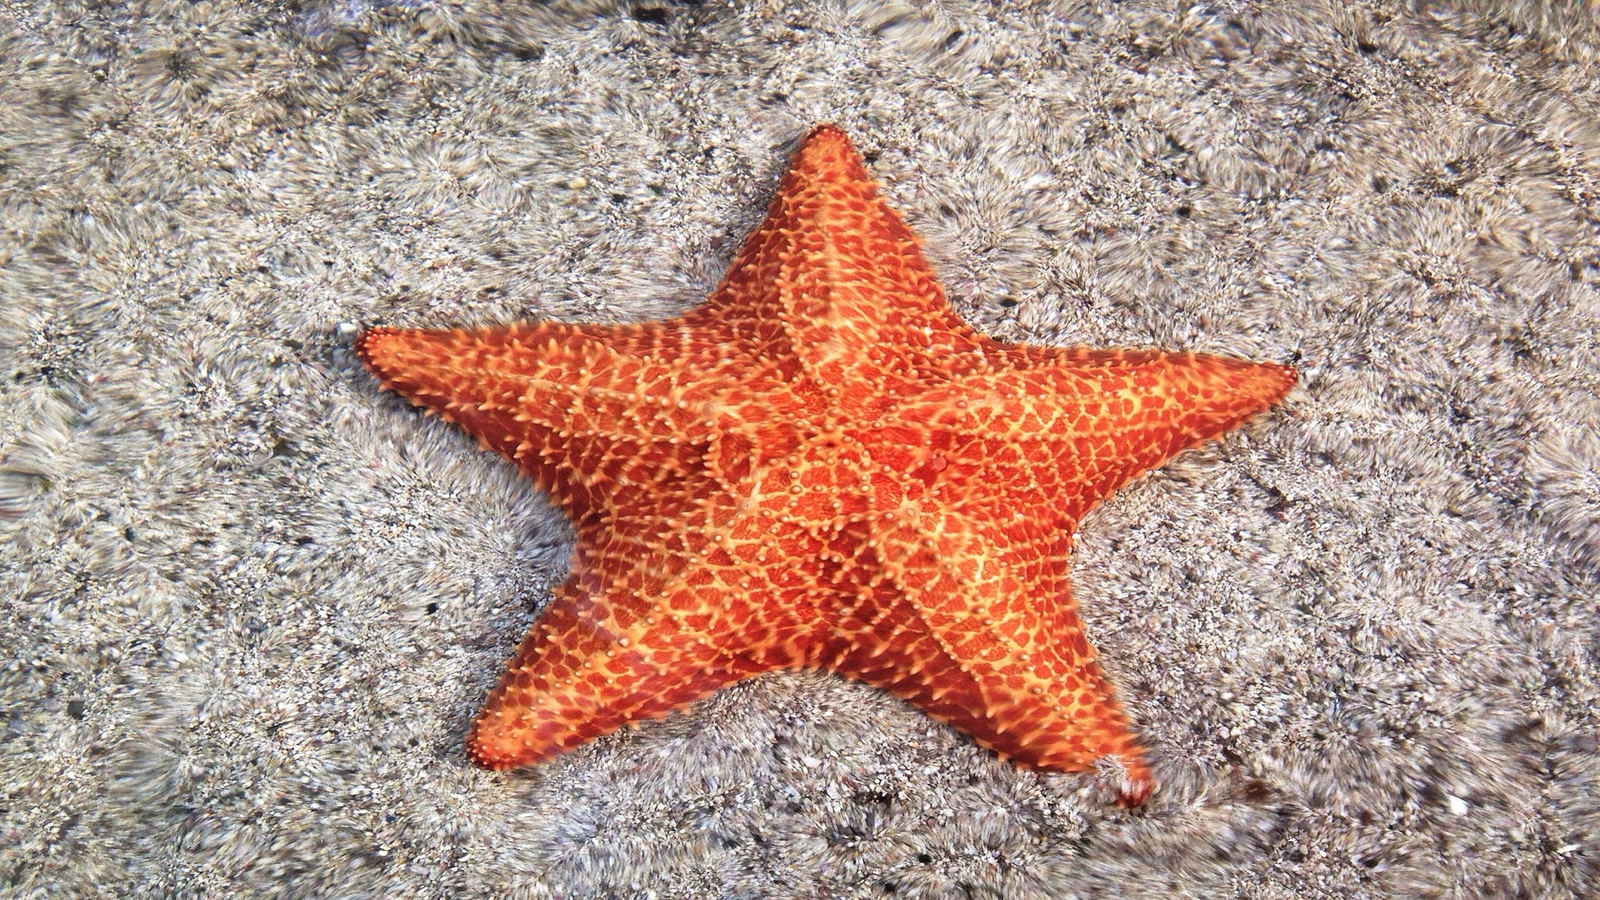 Picture of a Starfish - Starfish Early Alert